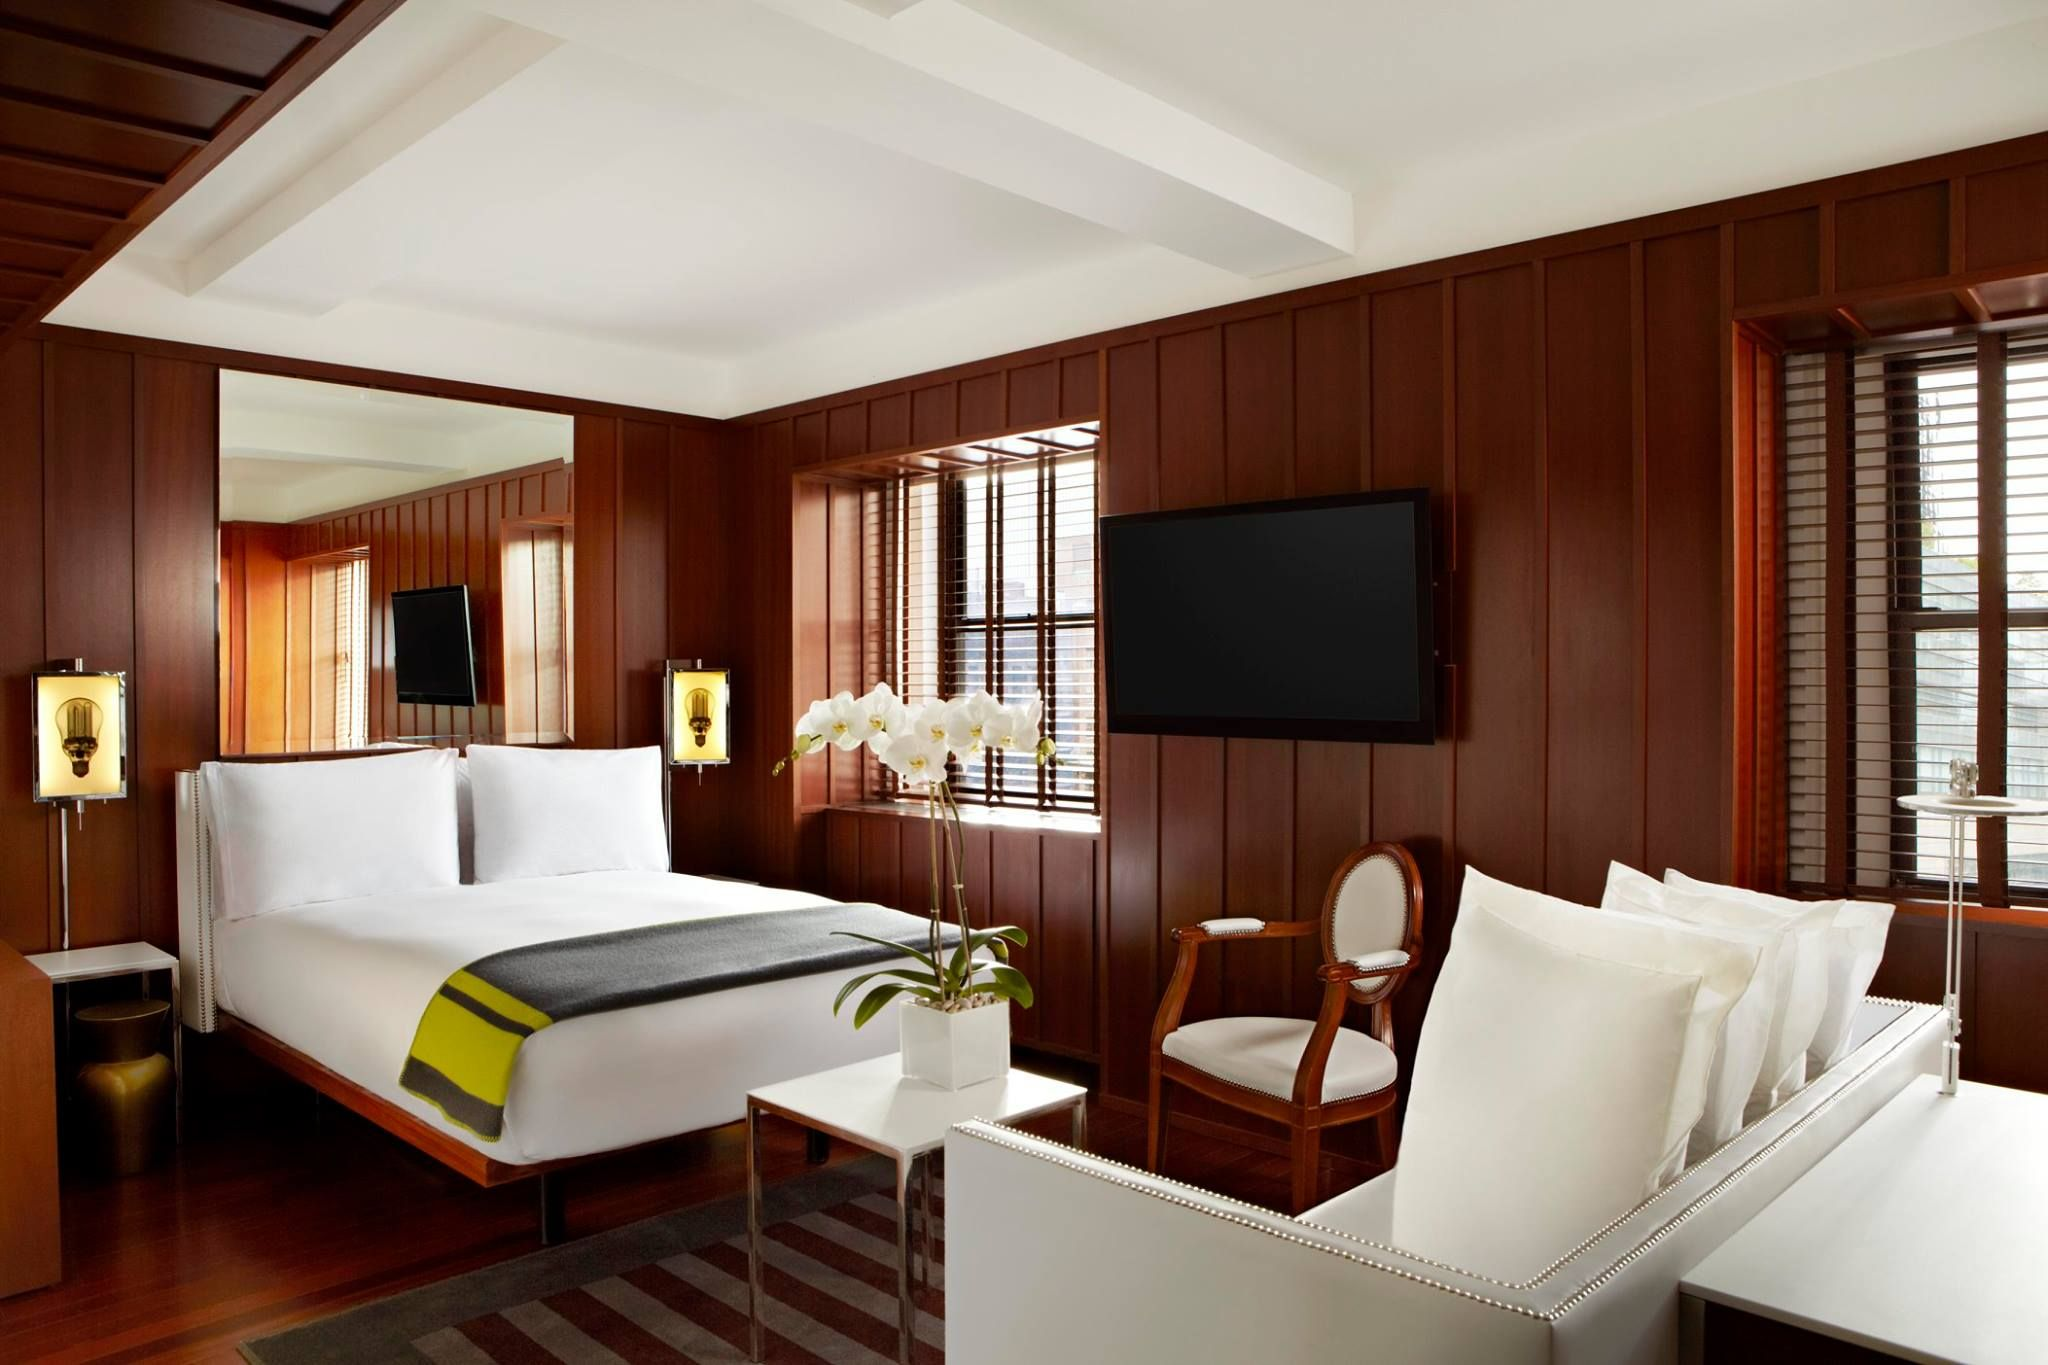 Hudson hotel nyc new york ny ecotimber hardwood brazilian cherry